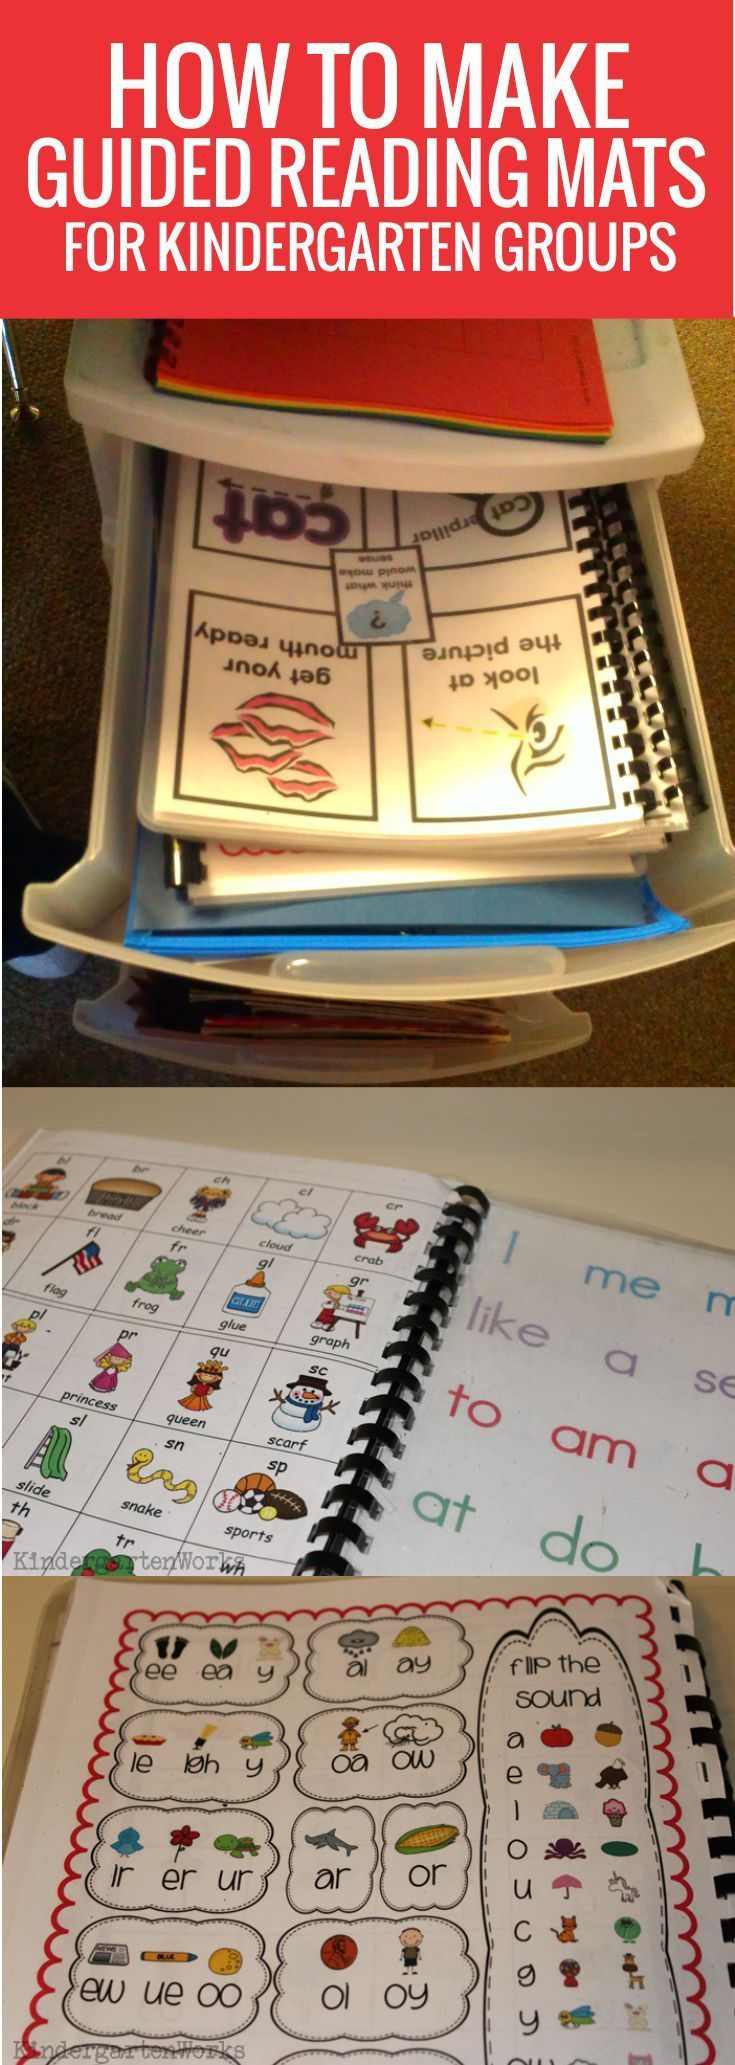 Handy Guided Reading Mats for Kindergarten Groups